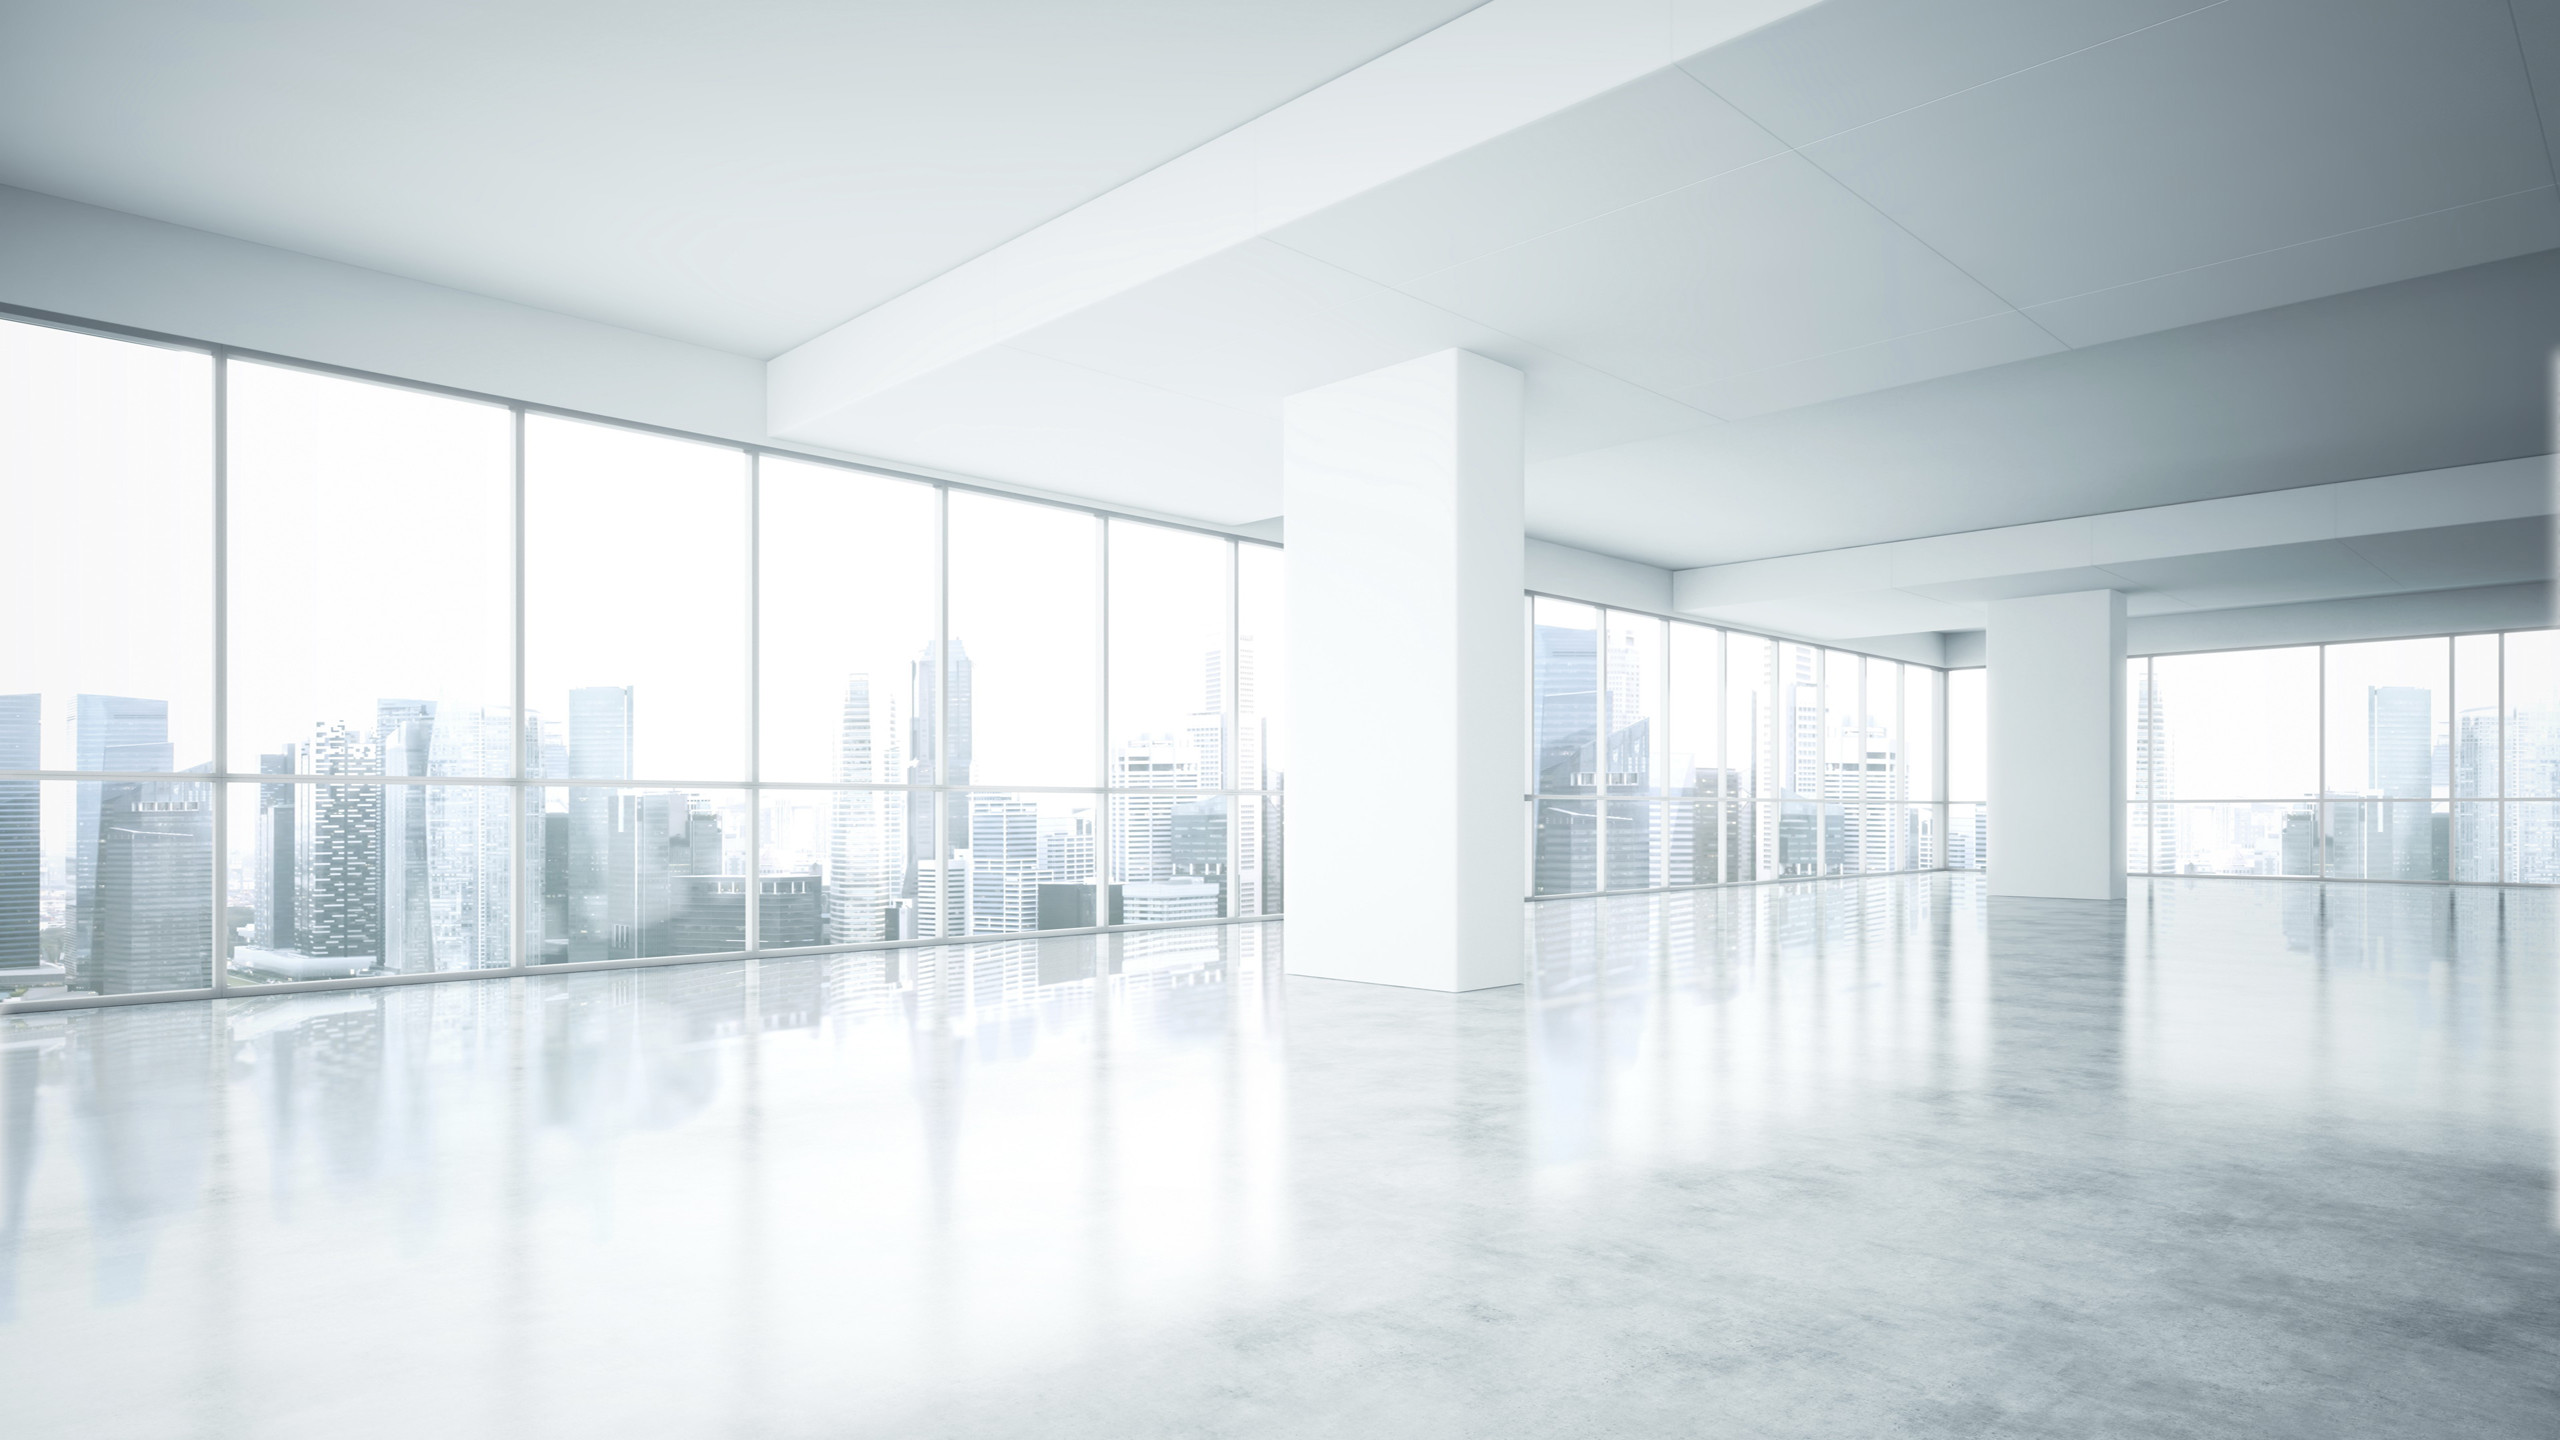 2560x1440 Empty white office interior with city view